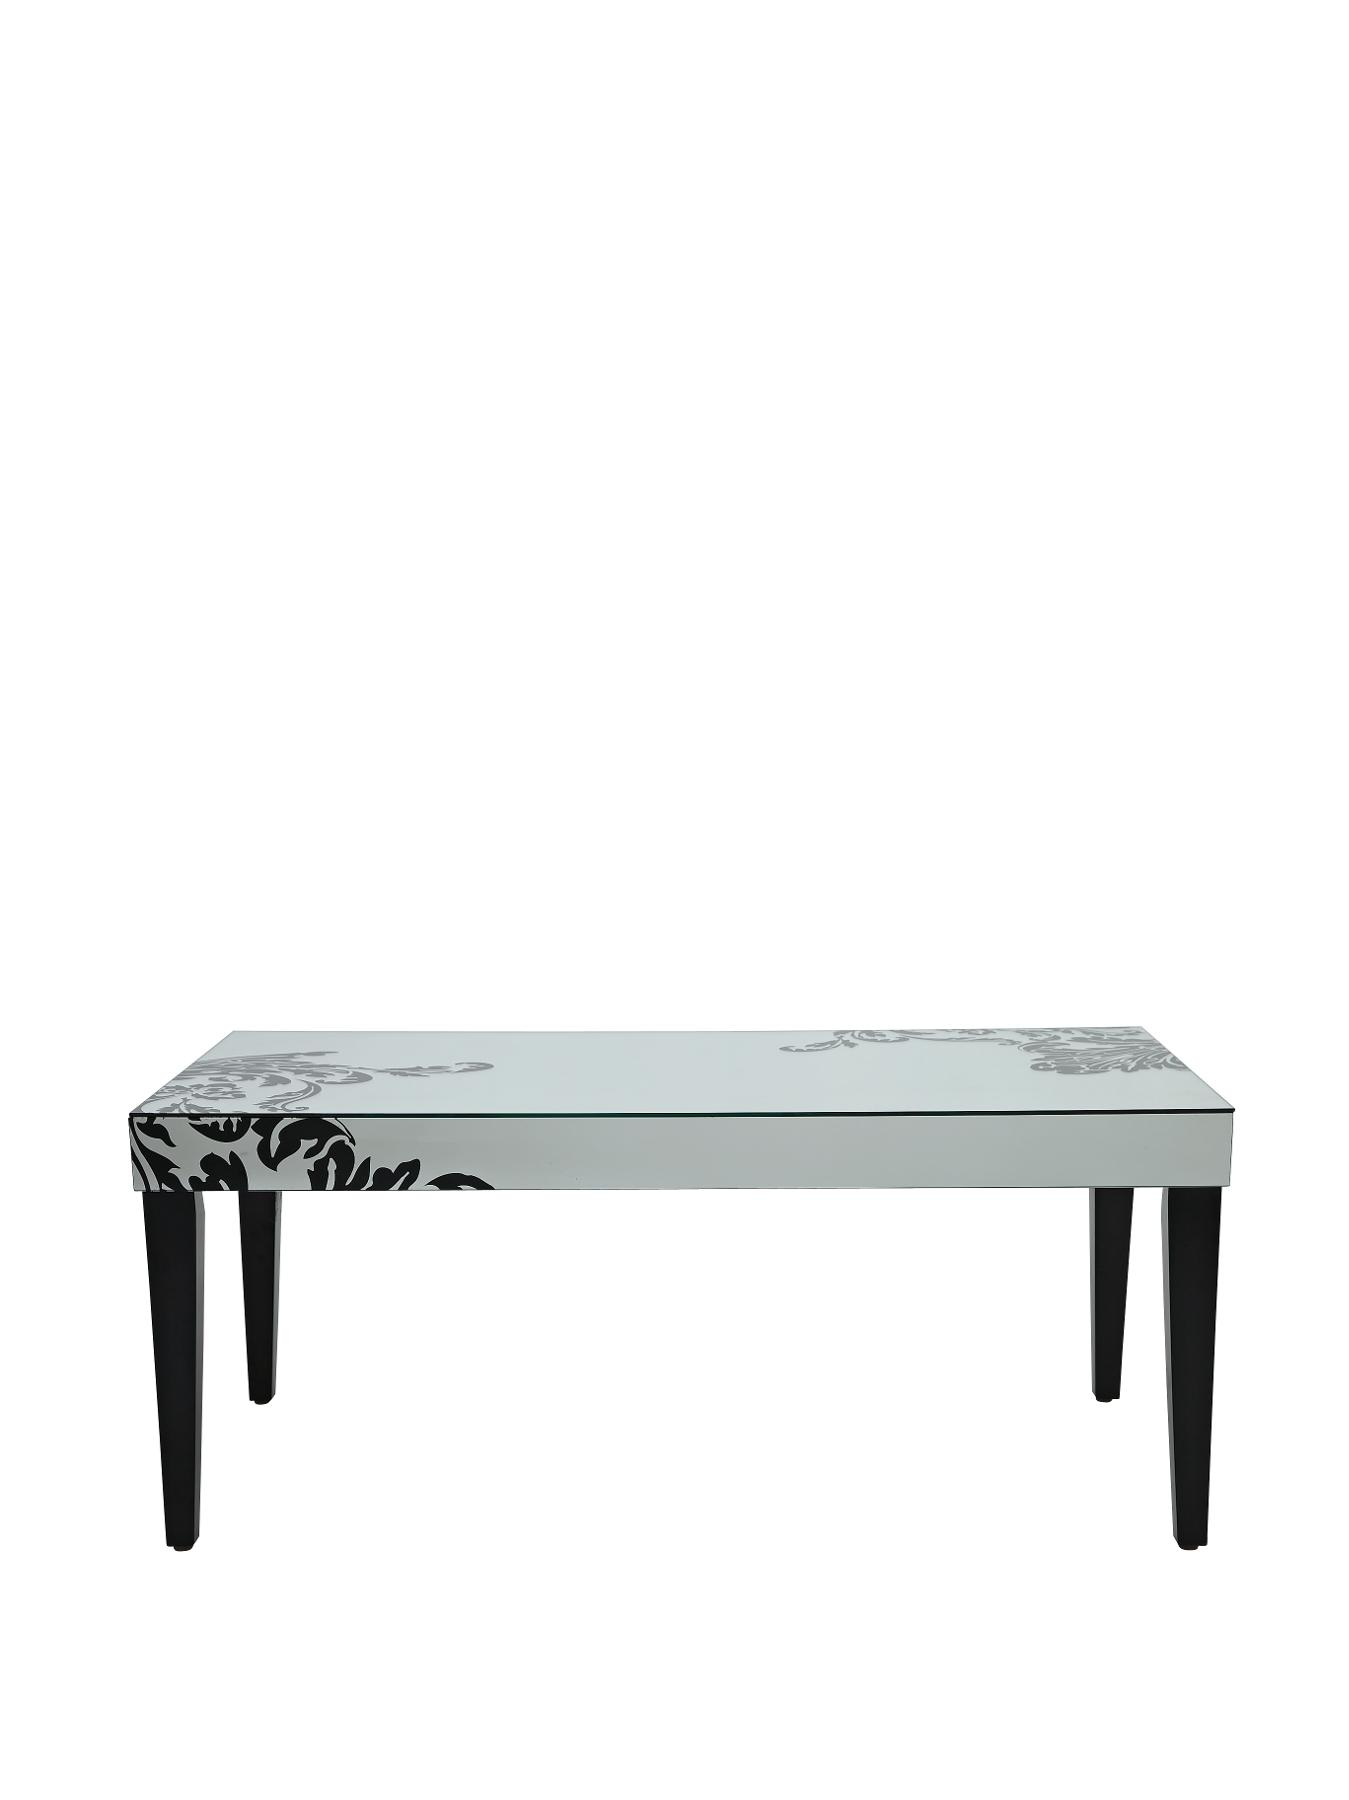 Scaramouche Coffee Table, Black,Bronze,Silver